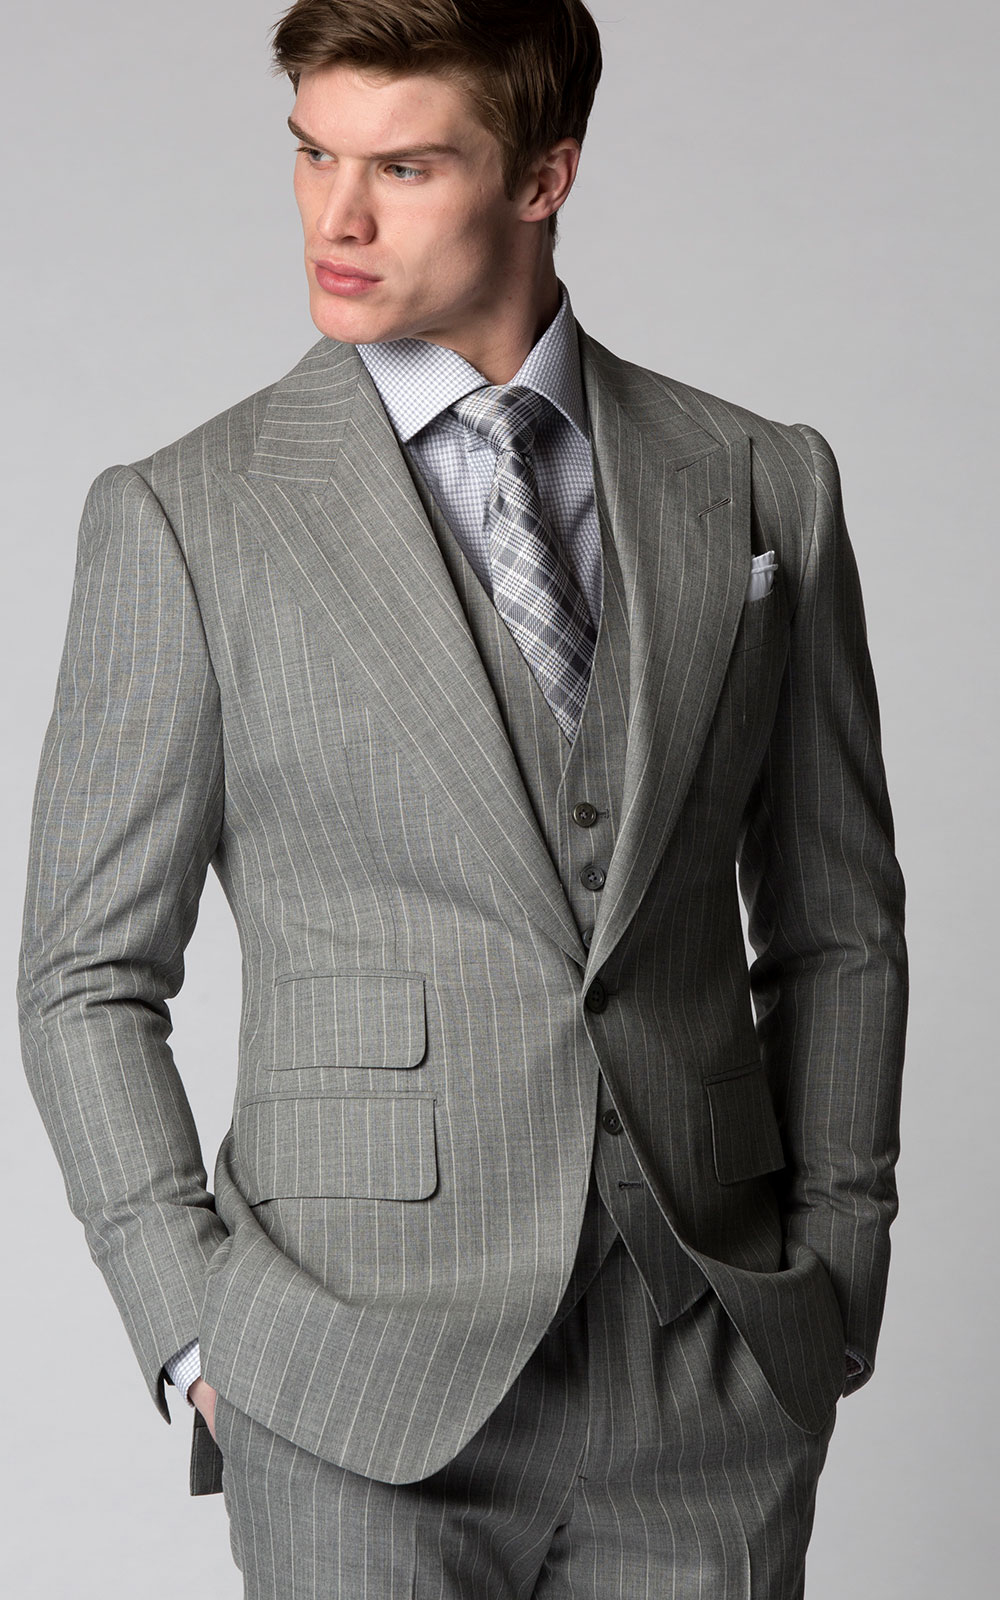 LIGHT GREY PINSTRIPE SUIT